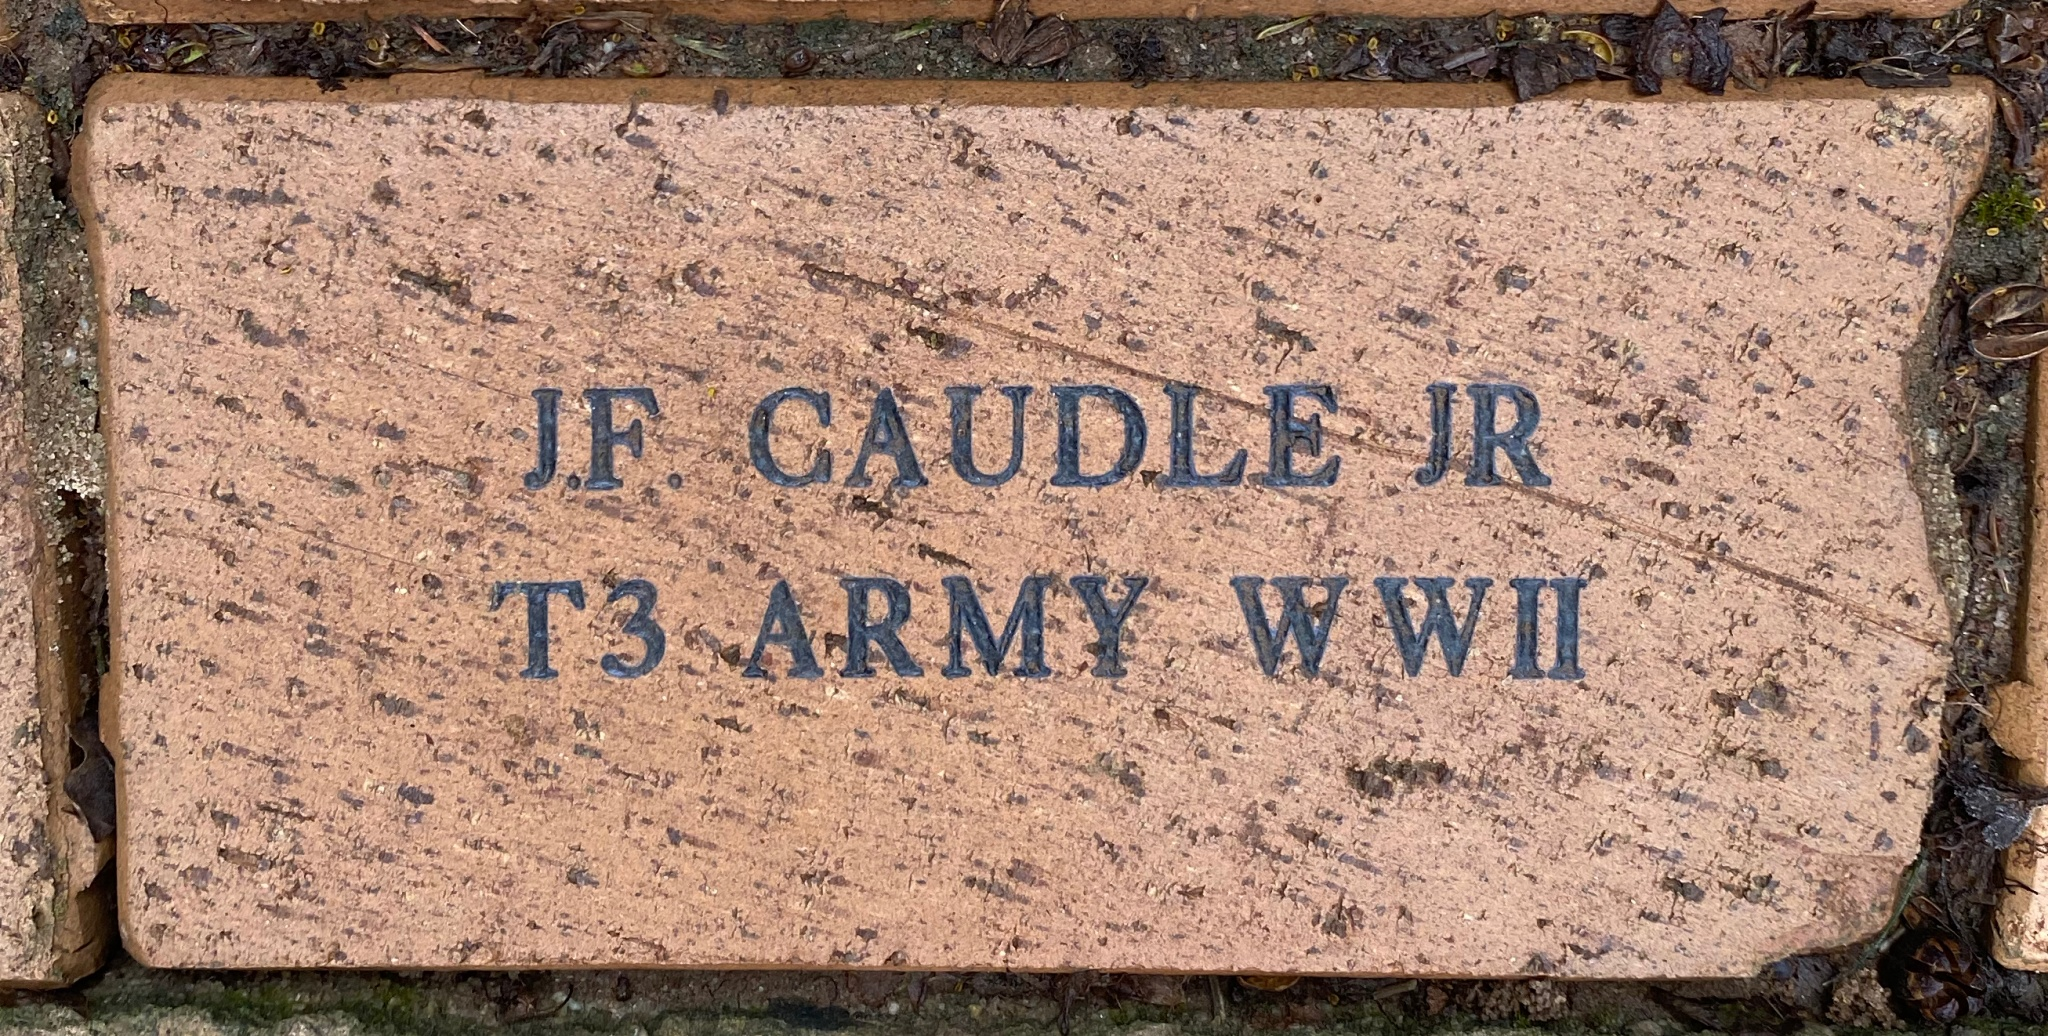 J.F. CAUDLE JR T3 ARMY WWII